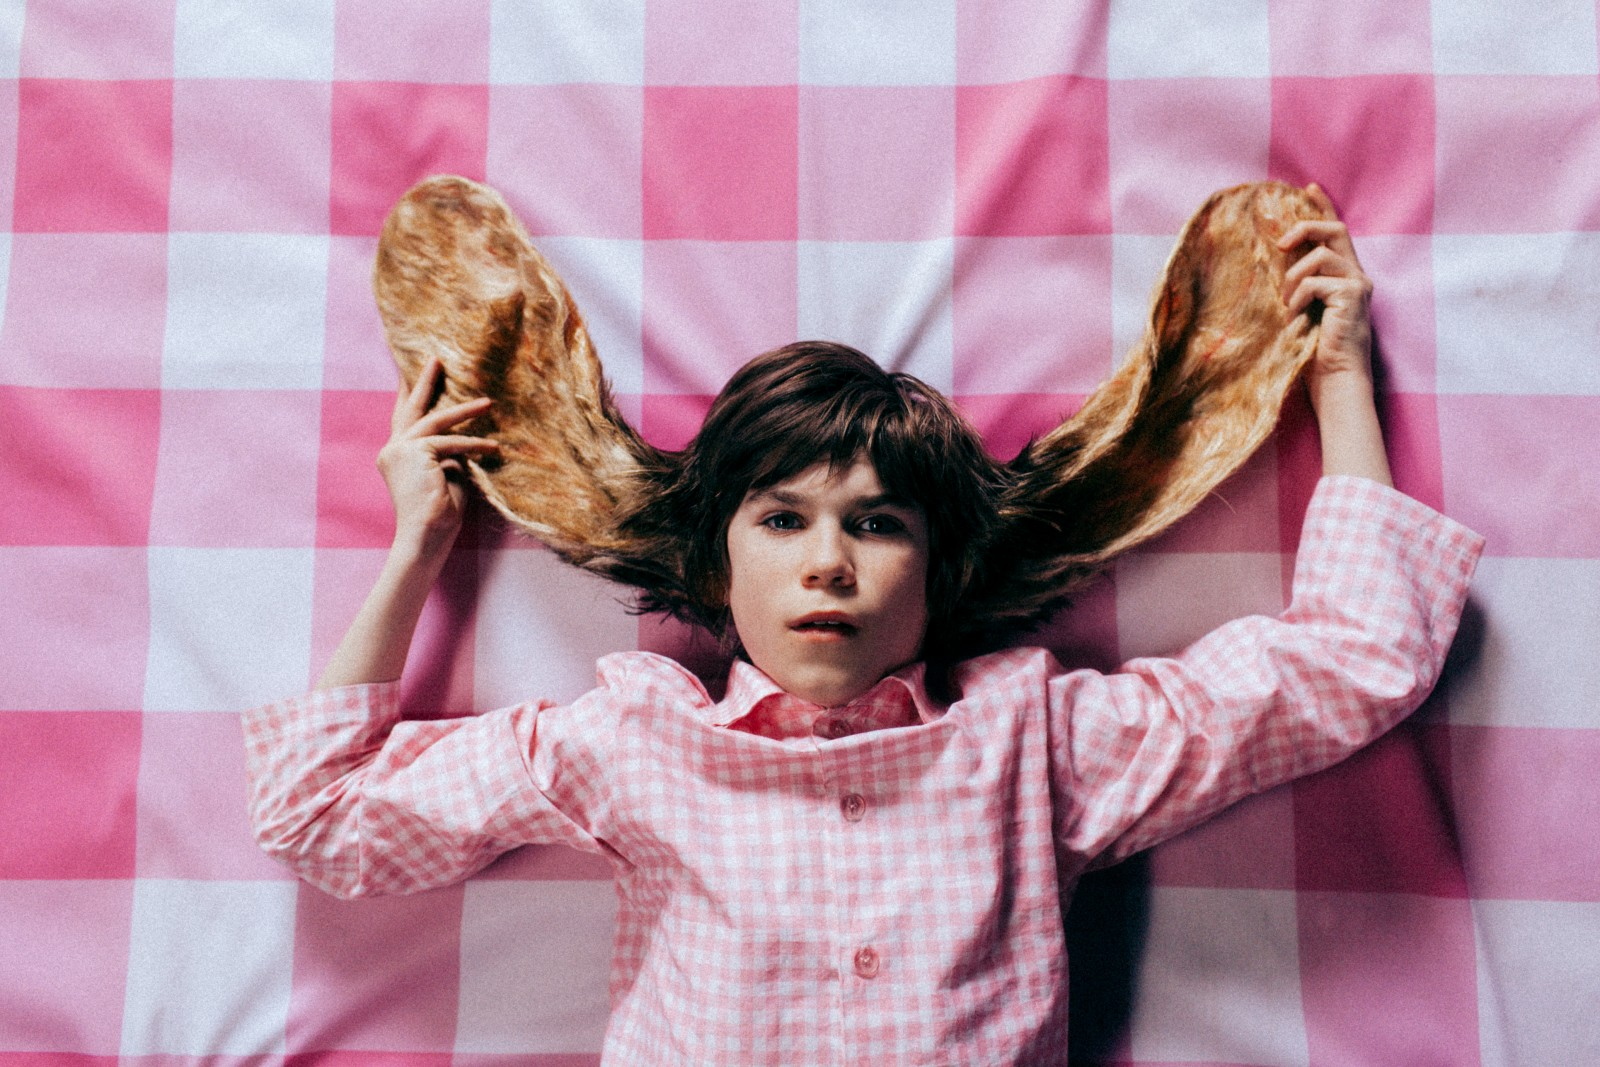 Screening Oct. 20 at NewFest, the Polish film Baby Bump tells the story of an 11-year-old boy coming to grips with his changing body and the surreal world around him